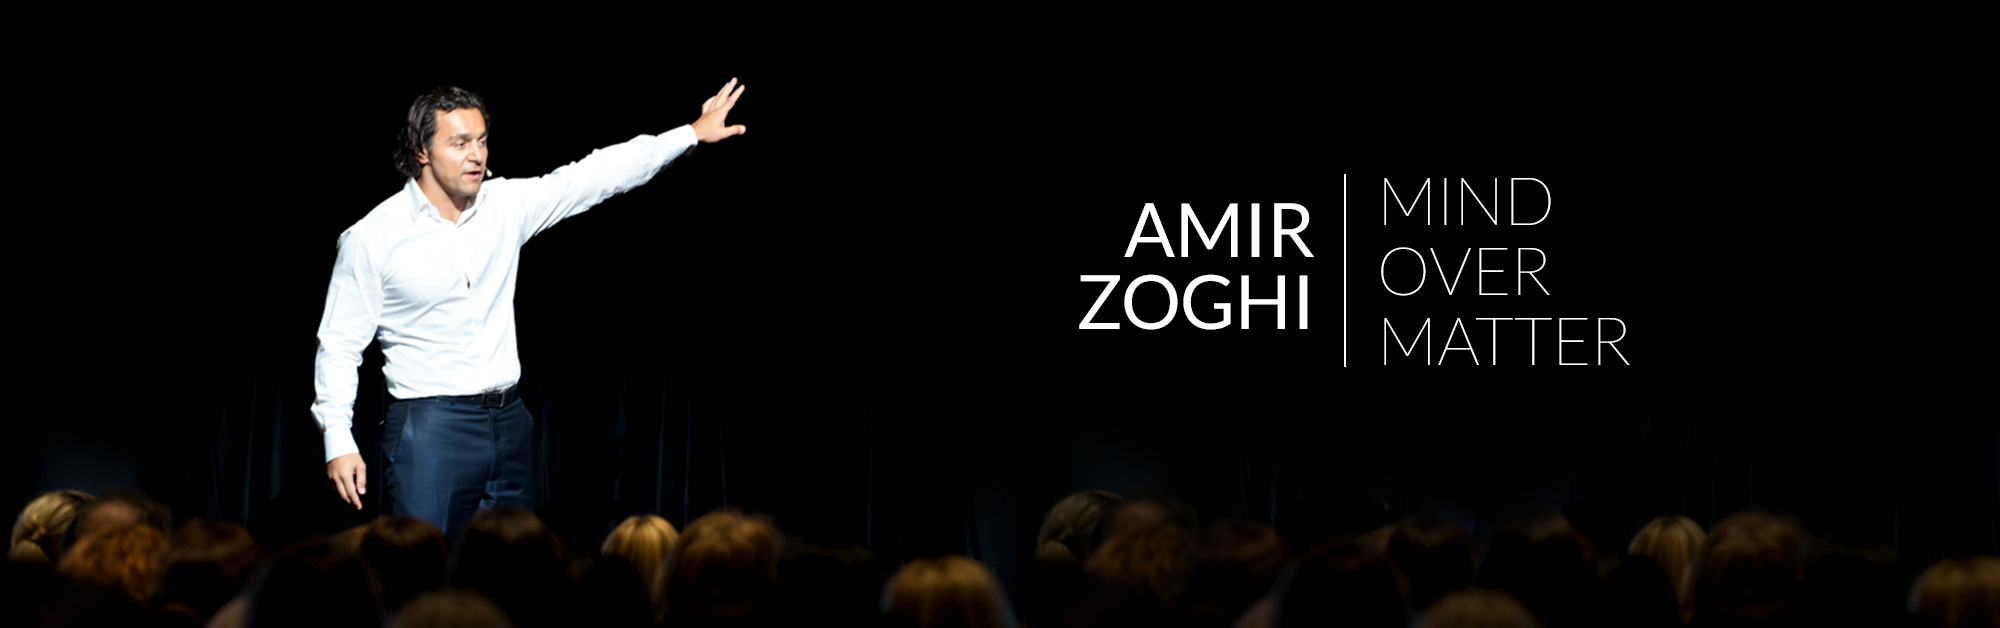 Amir Zoghi | Mind Over Matter